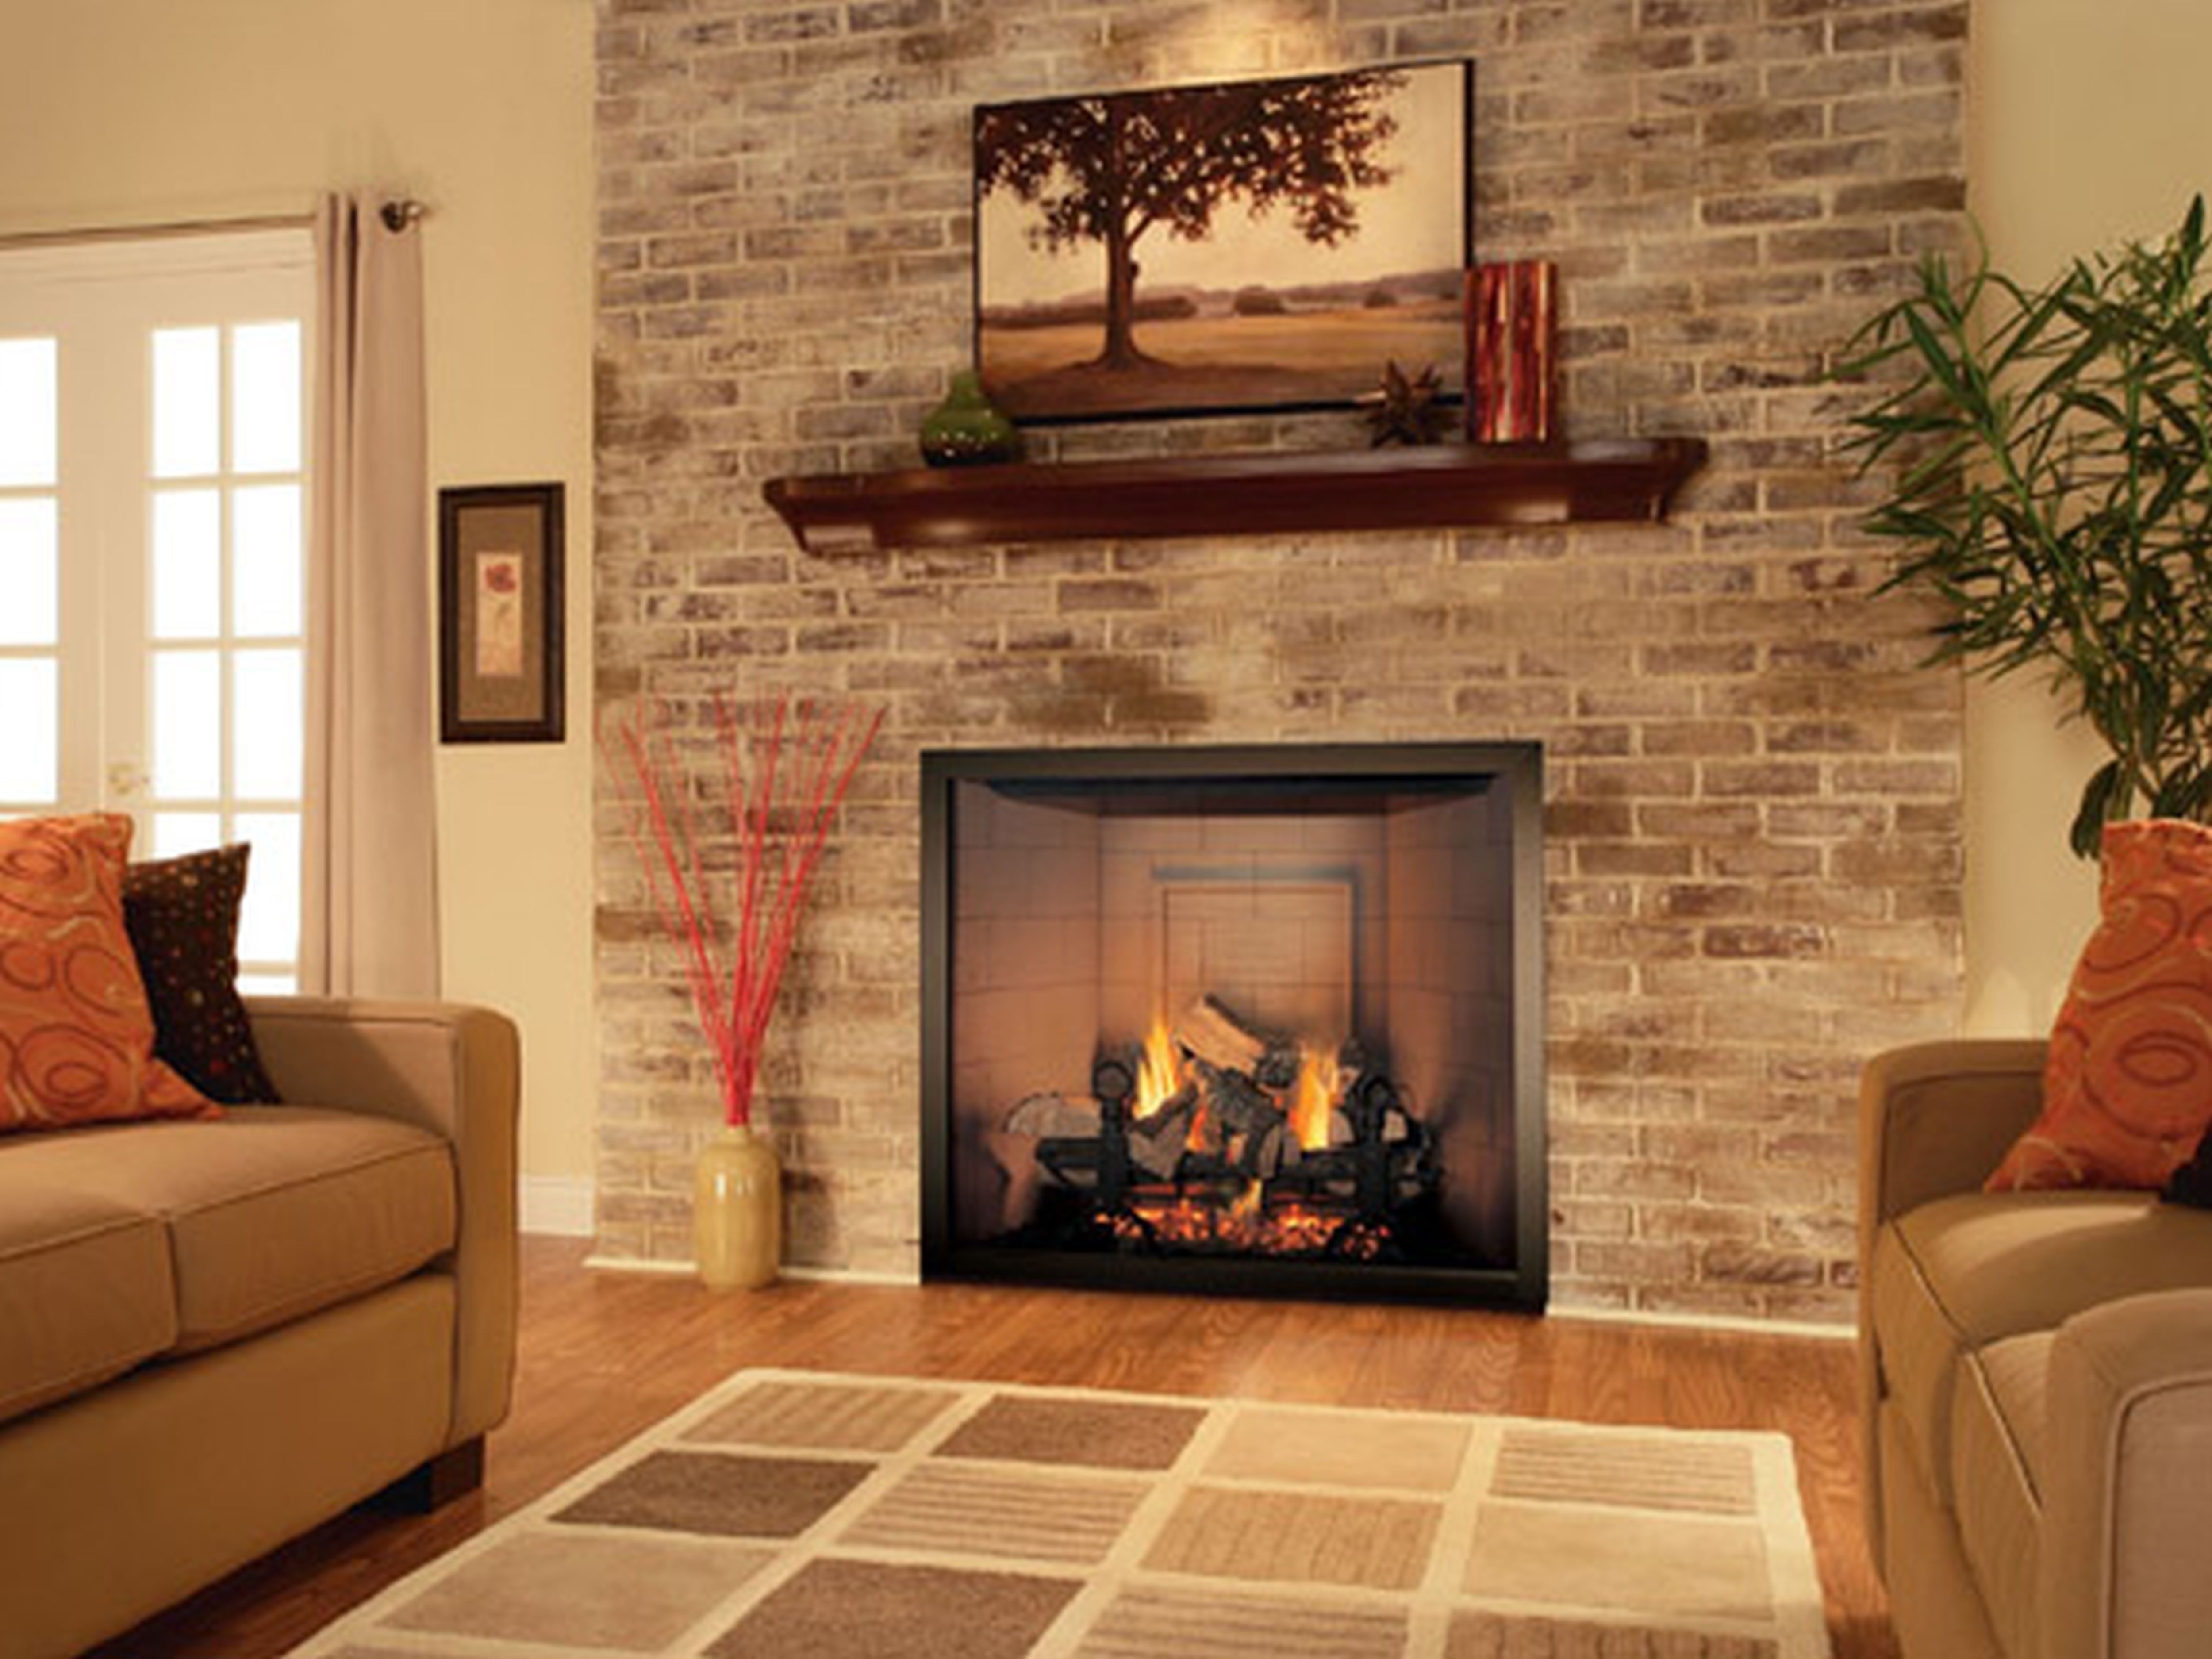 10 Hot Ideas for Fireplace Facing